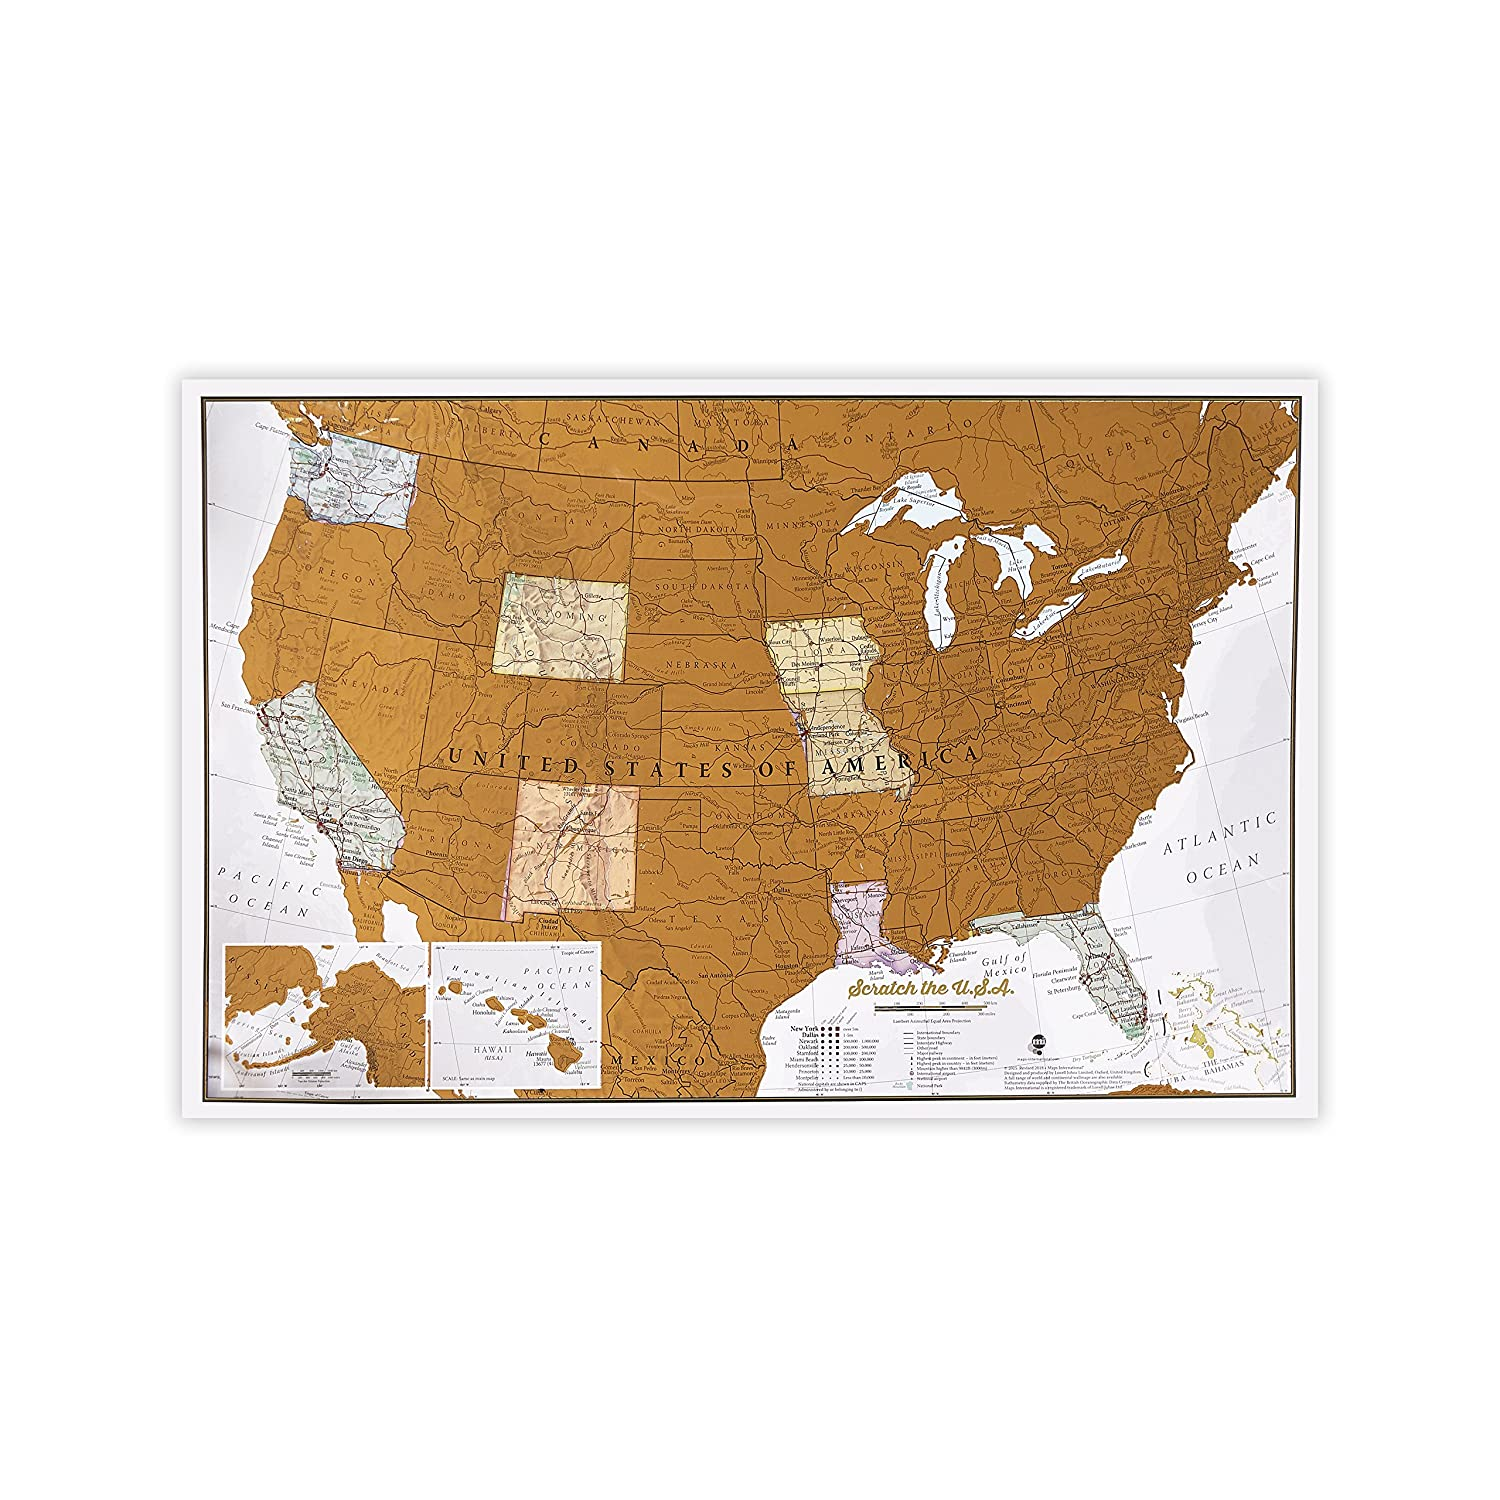 Scratch USA - Scratch off places you travel map - America (US) - Detailed cartography - US States - National Parks - 34 (w) x 22 (h) inches Maps International CT1213-FBM